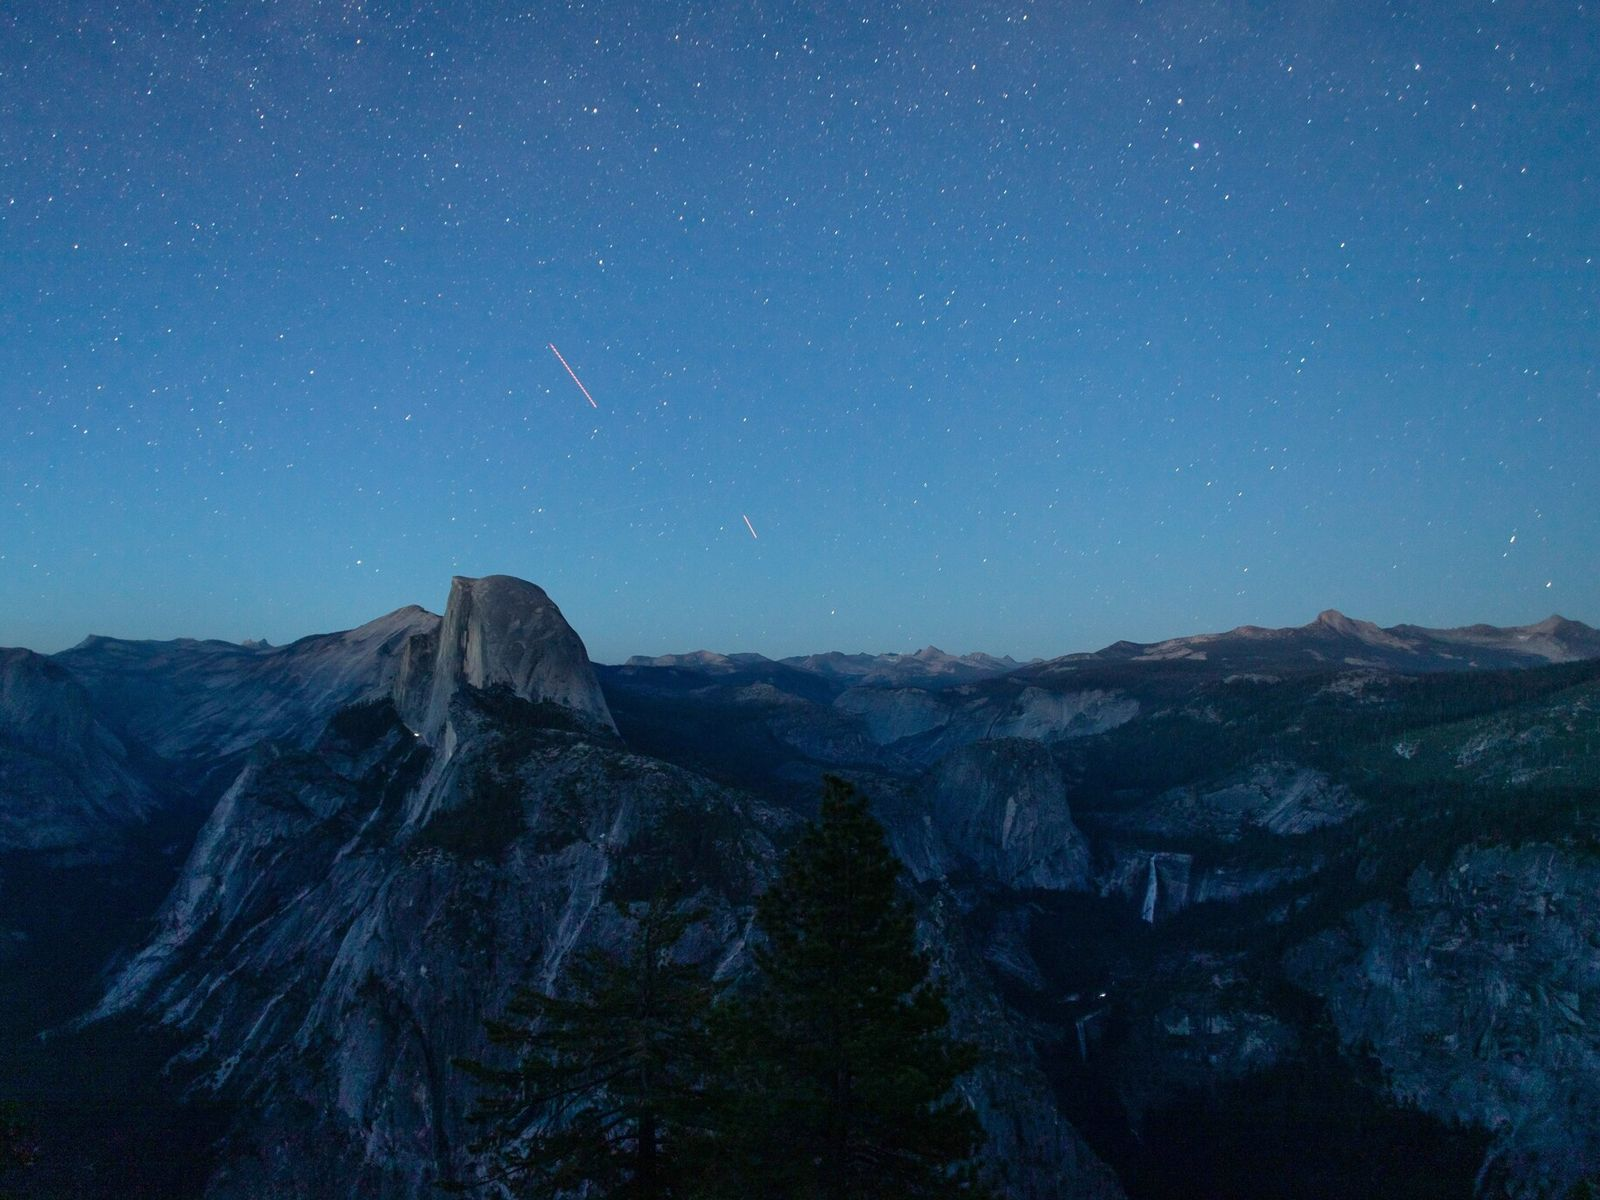 Dusk falls over Yosemite Valley's natural attractions, including Half Dome (center left) and Nevada Fall (lower ...